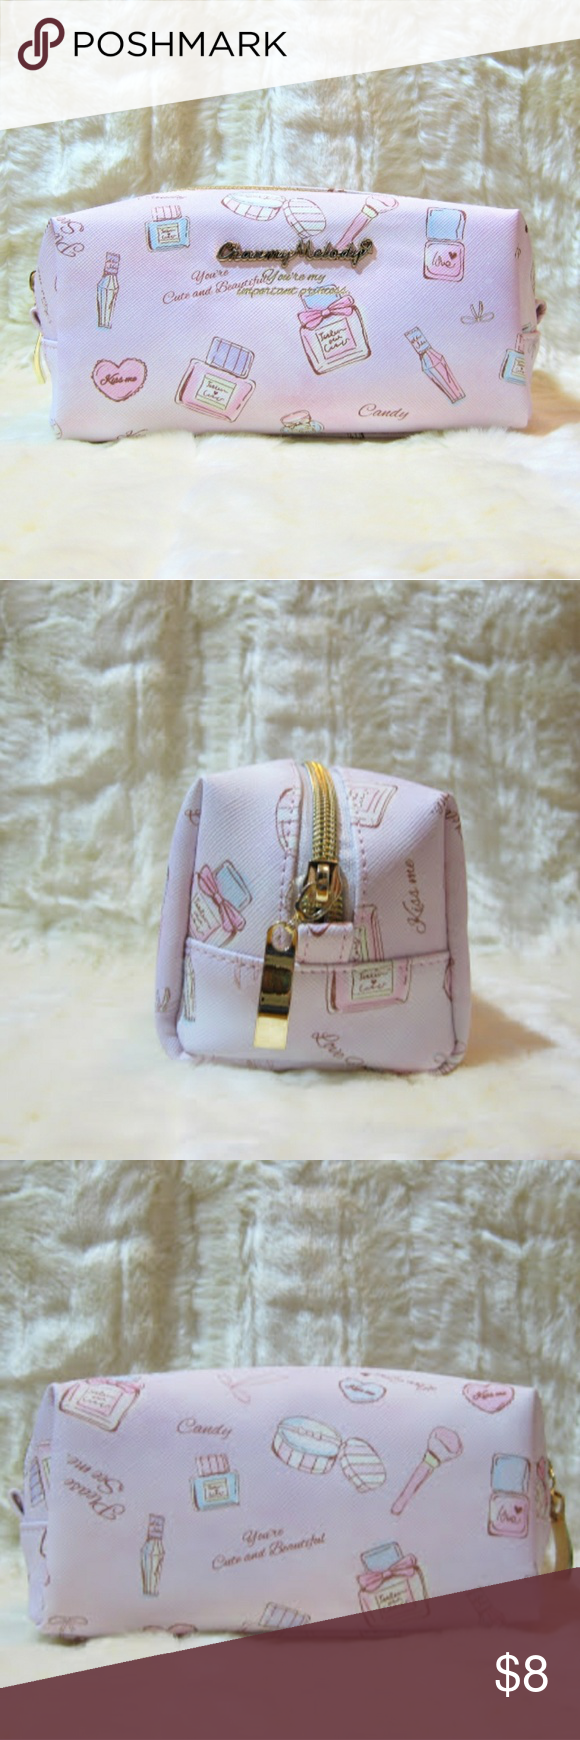 Charmy Melody Makeup Pouch Makeup pouch, faux leather